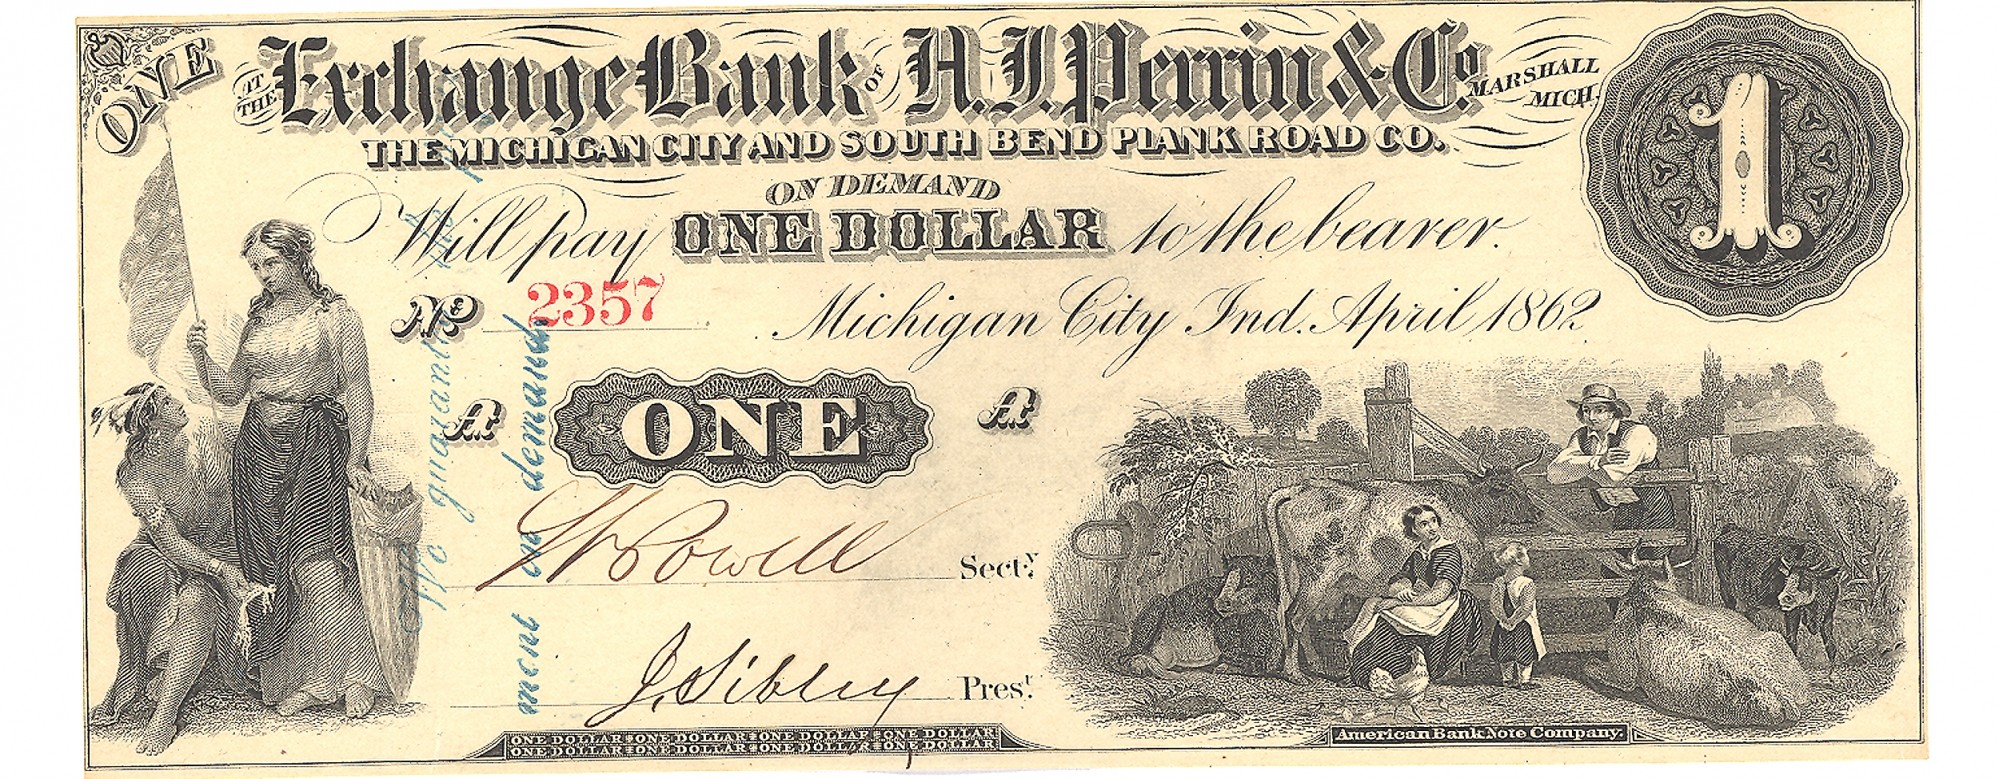 THE EXCHANGE BANK OF A.J. PERRIN & CO., MICHIGAN CITY, MICHIGAN $1 NOTE